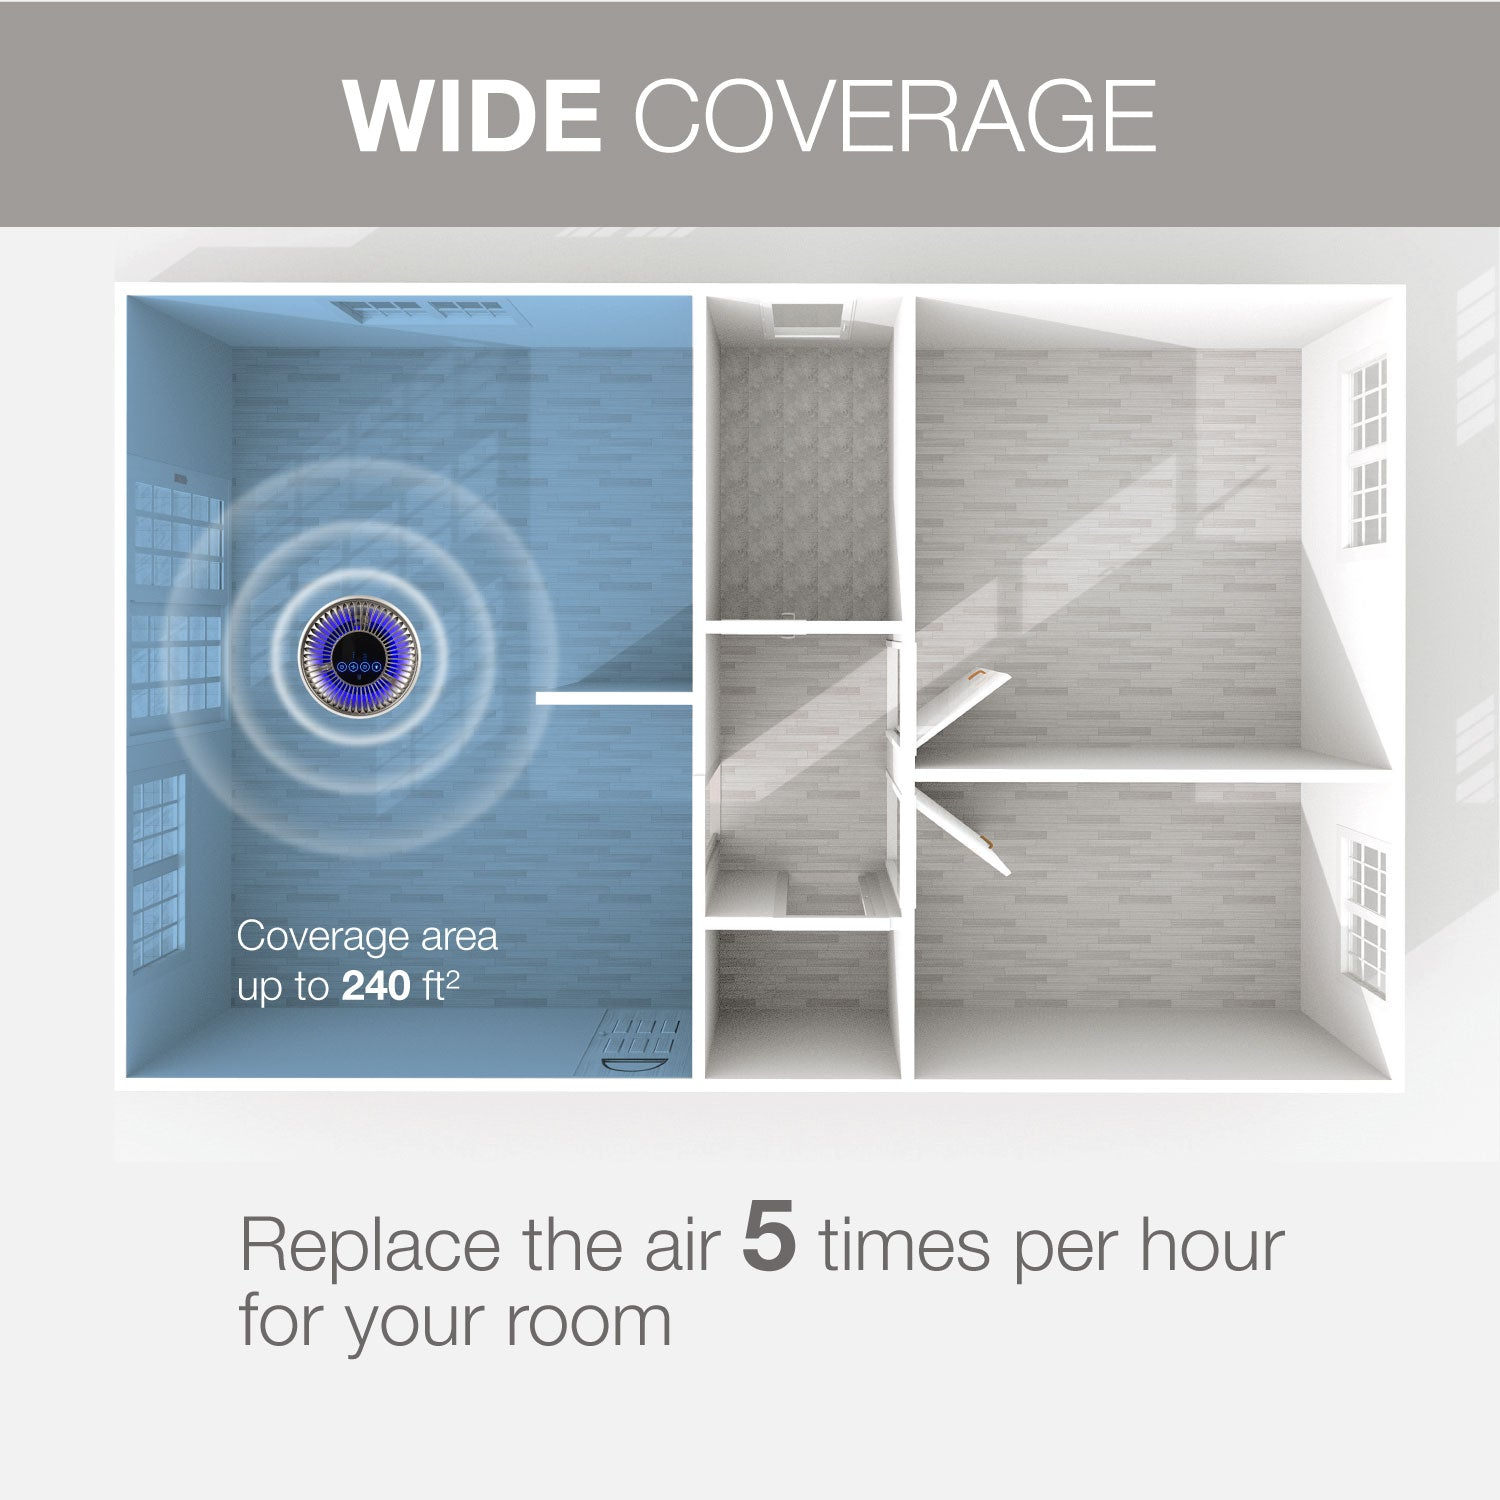 An image of the wide coverage of the air purifier.